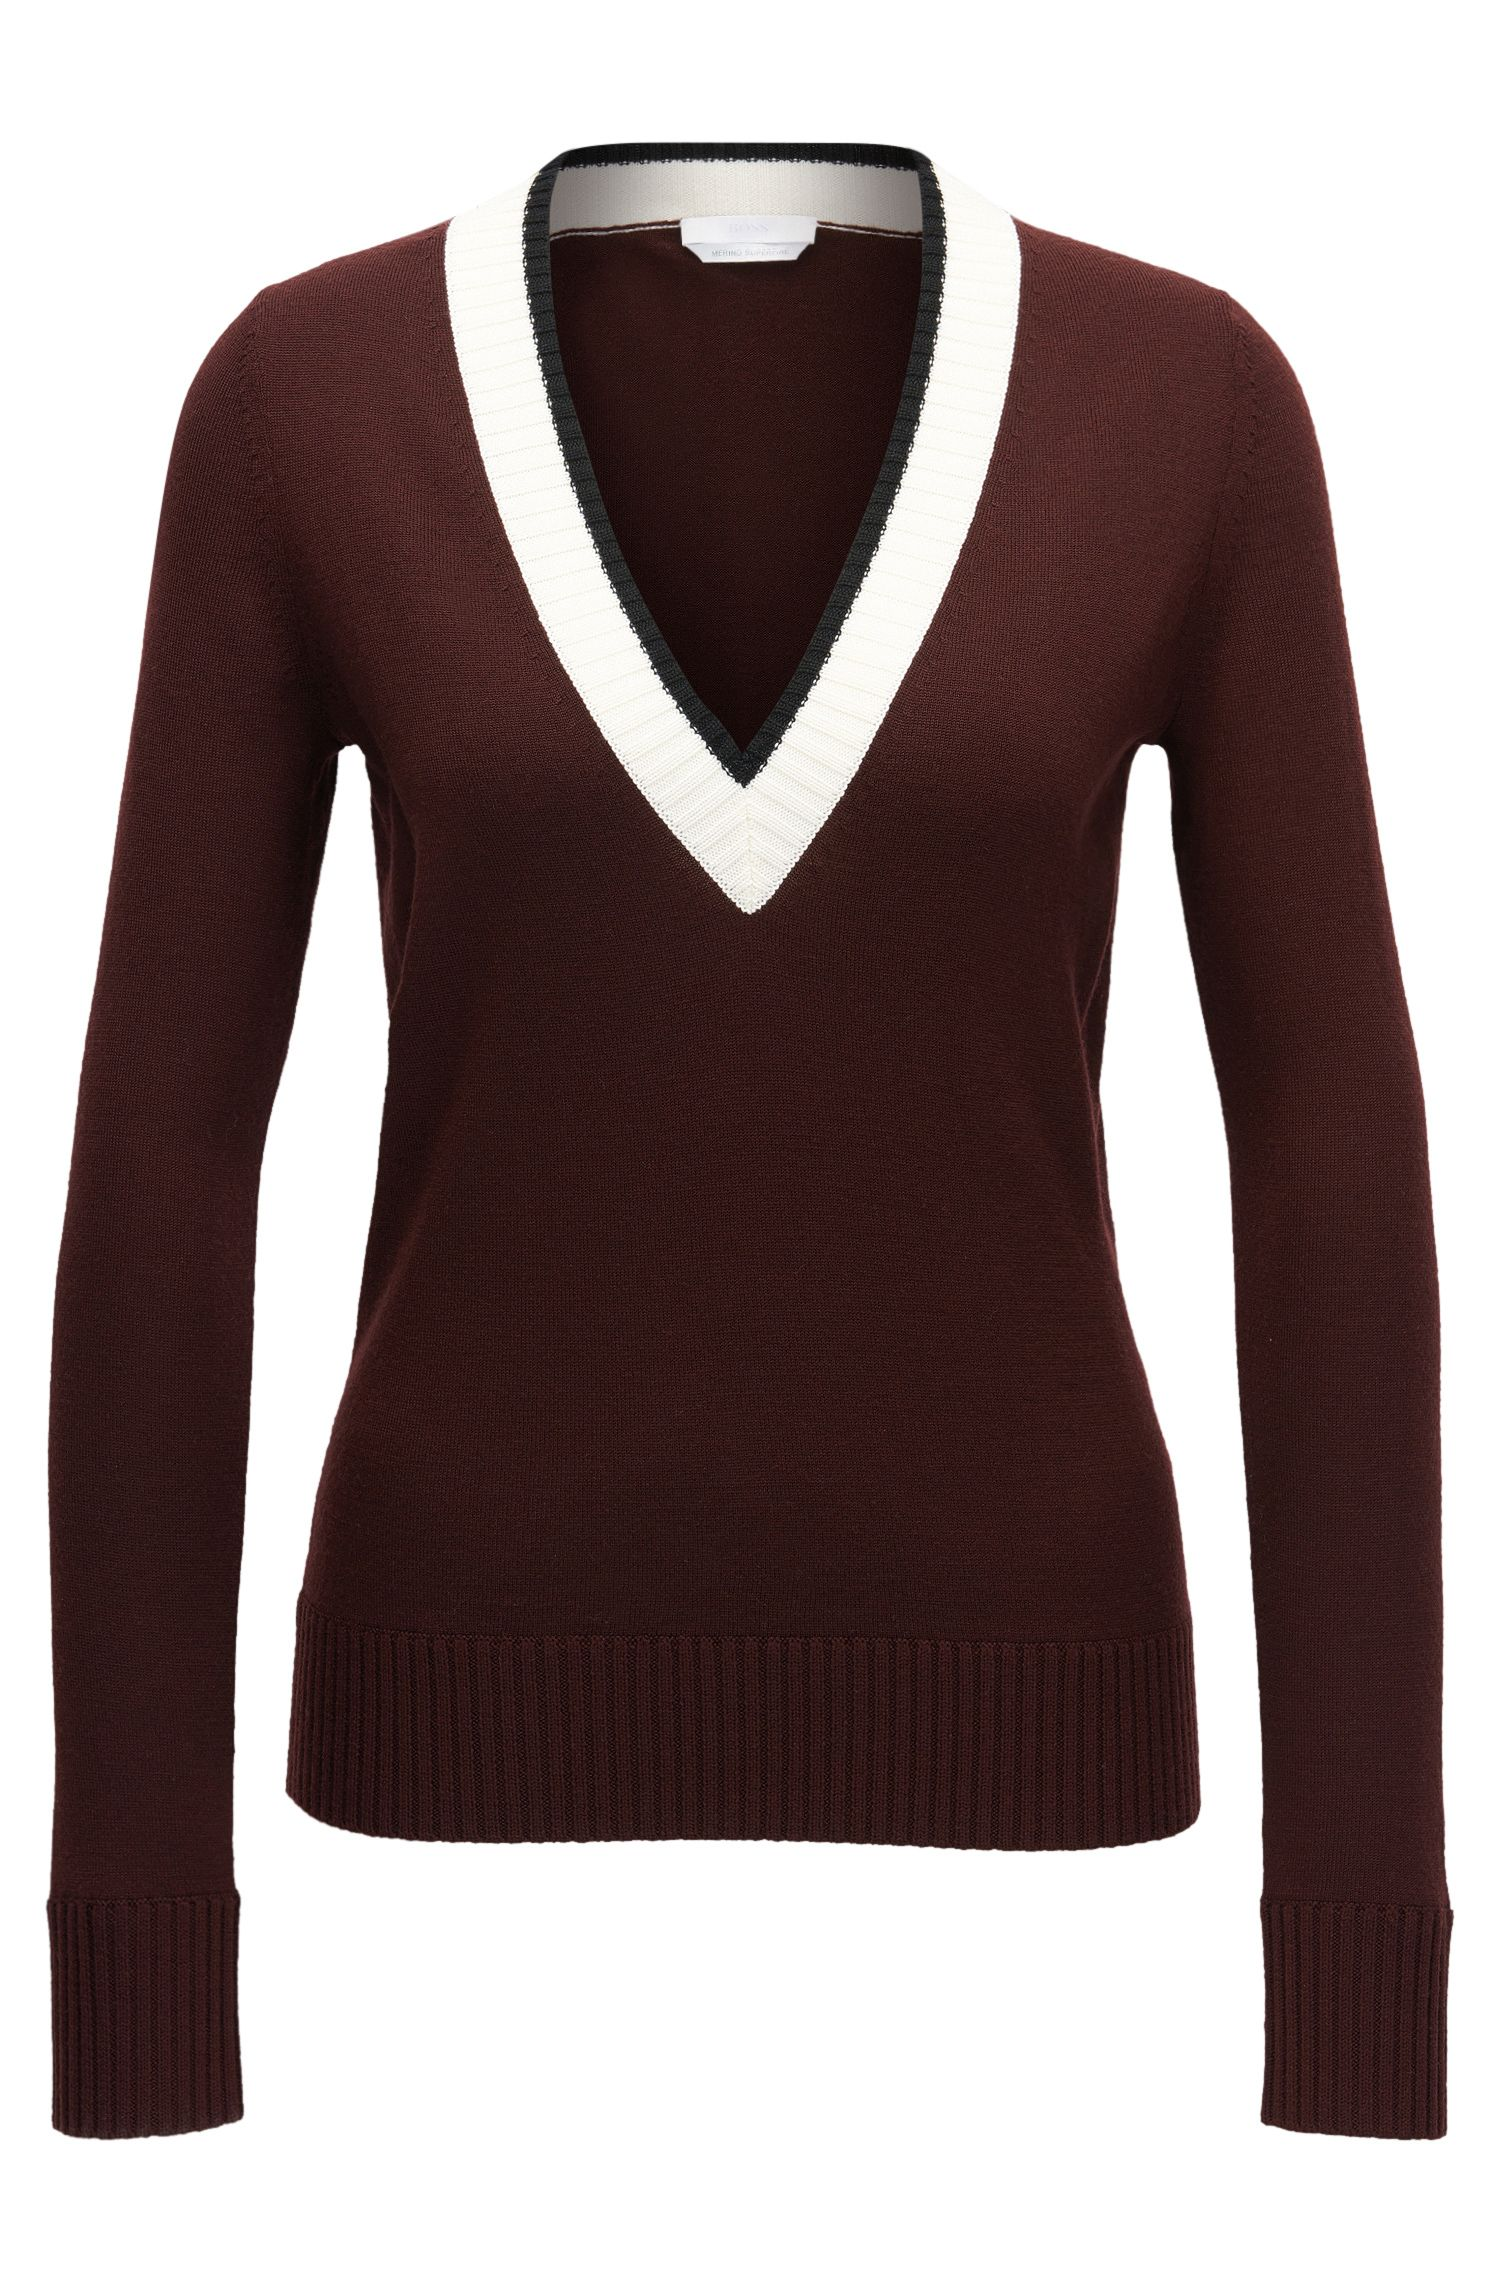 Cropped V-neck sweater in mercerised virgin wool